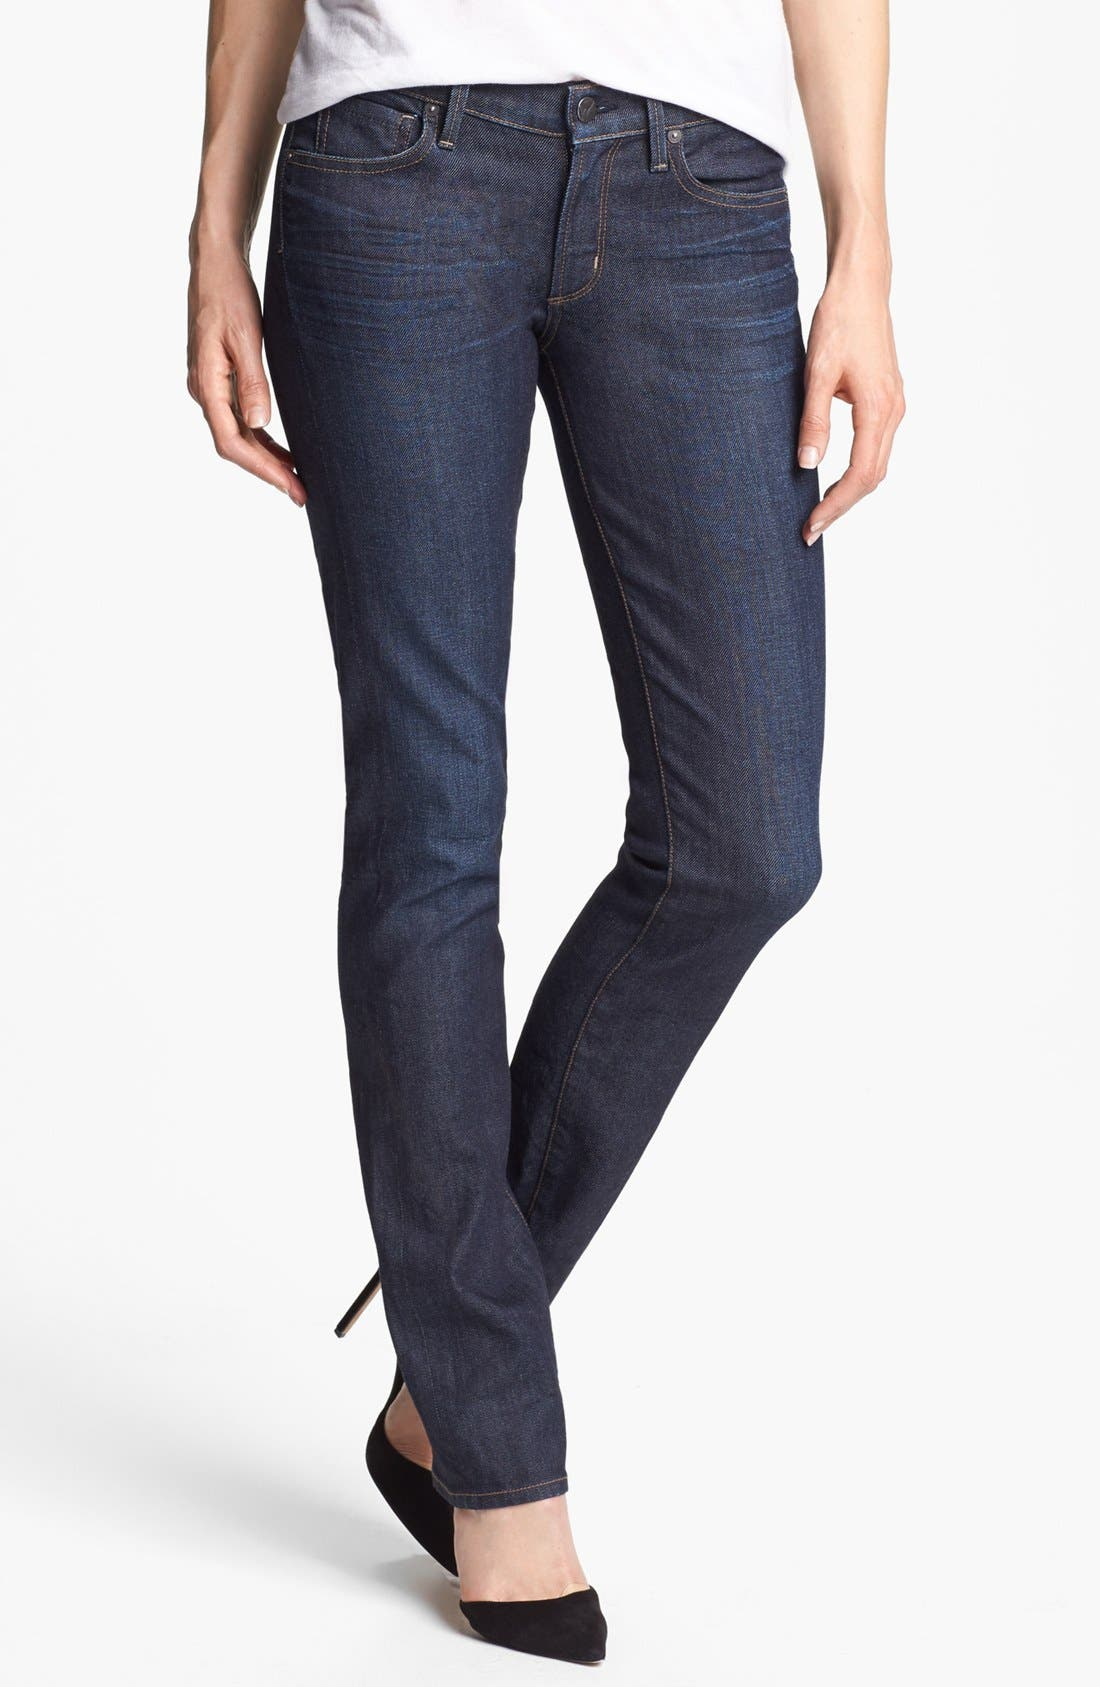 Main Image - Citizens of Humanity 'Ava' Straight Leg Jeans (Hush)